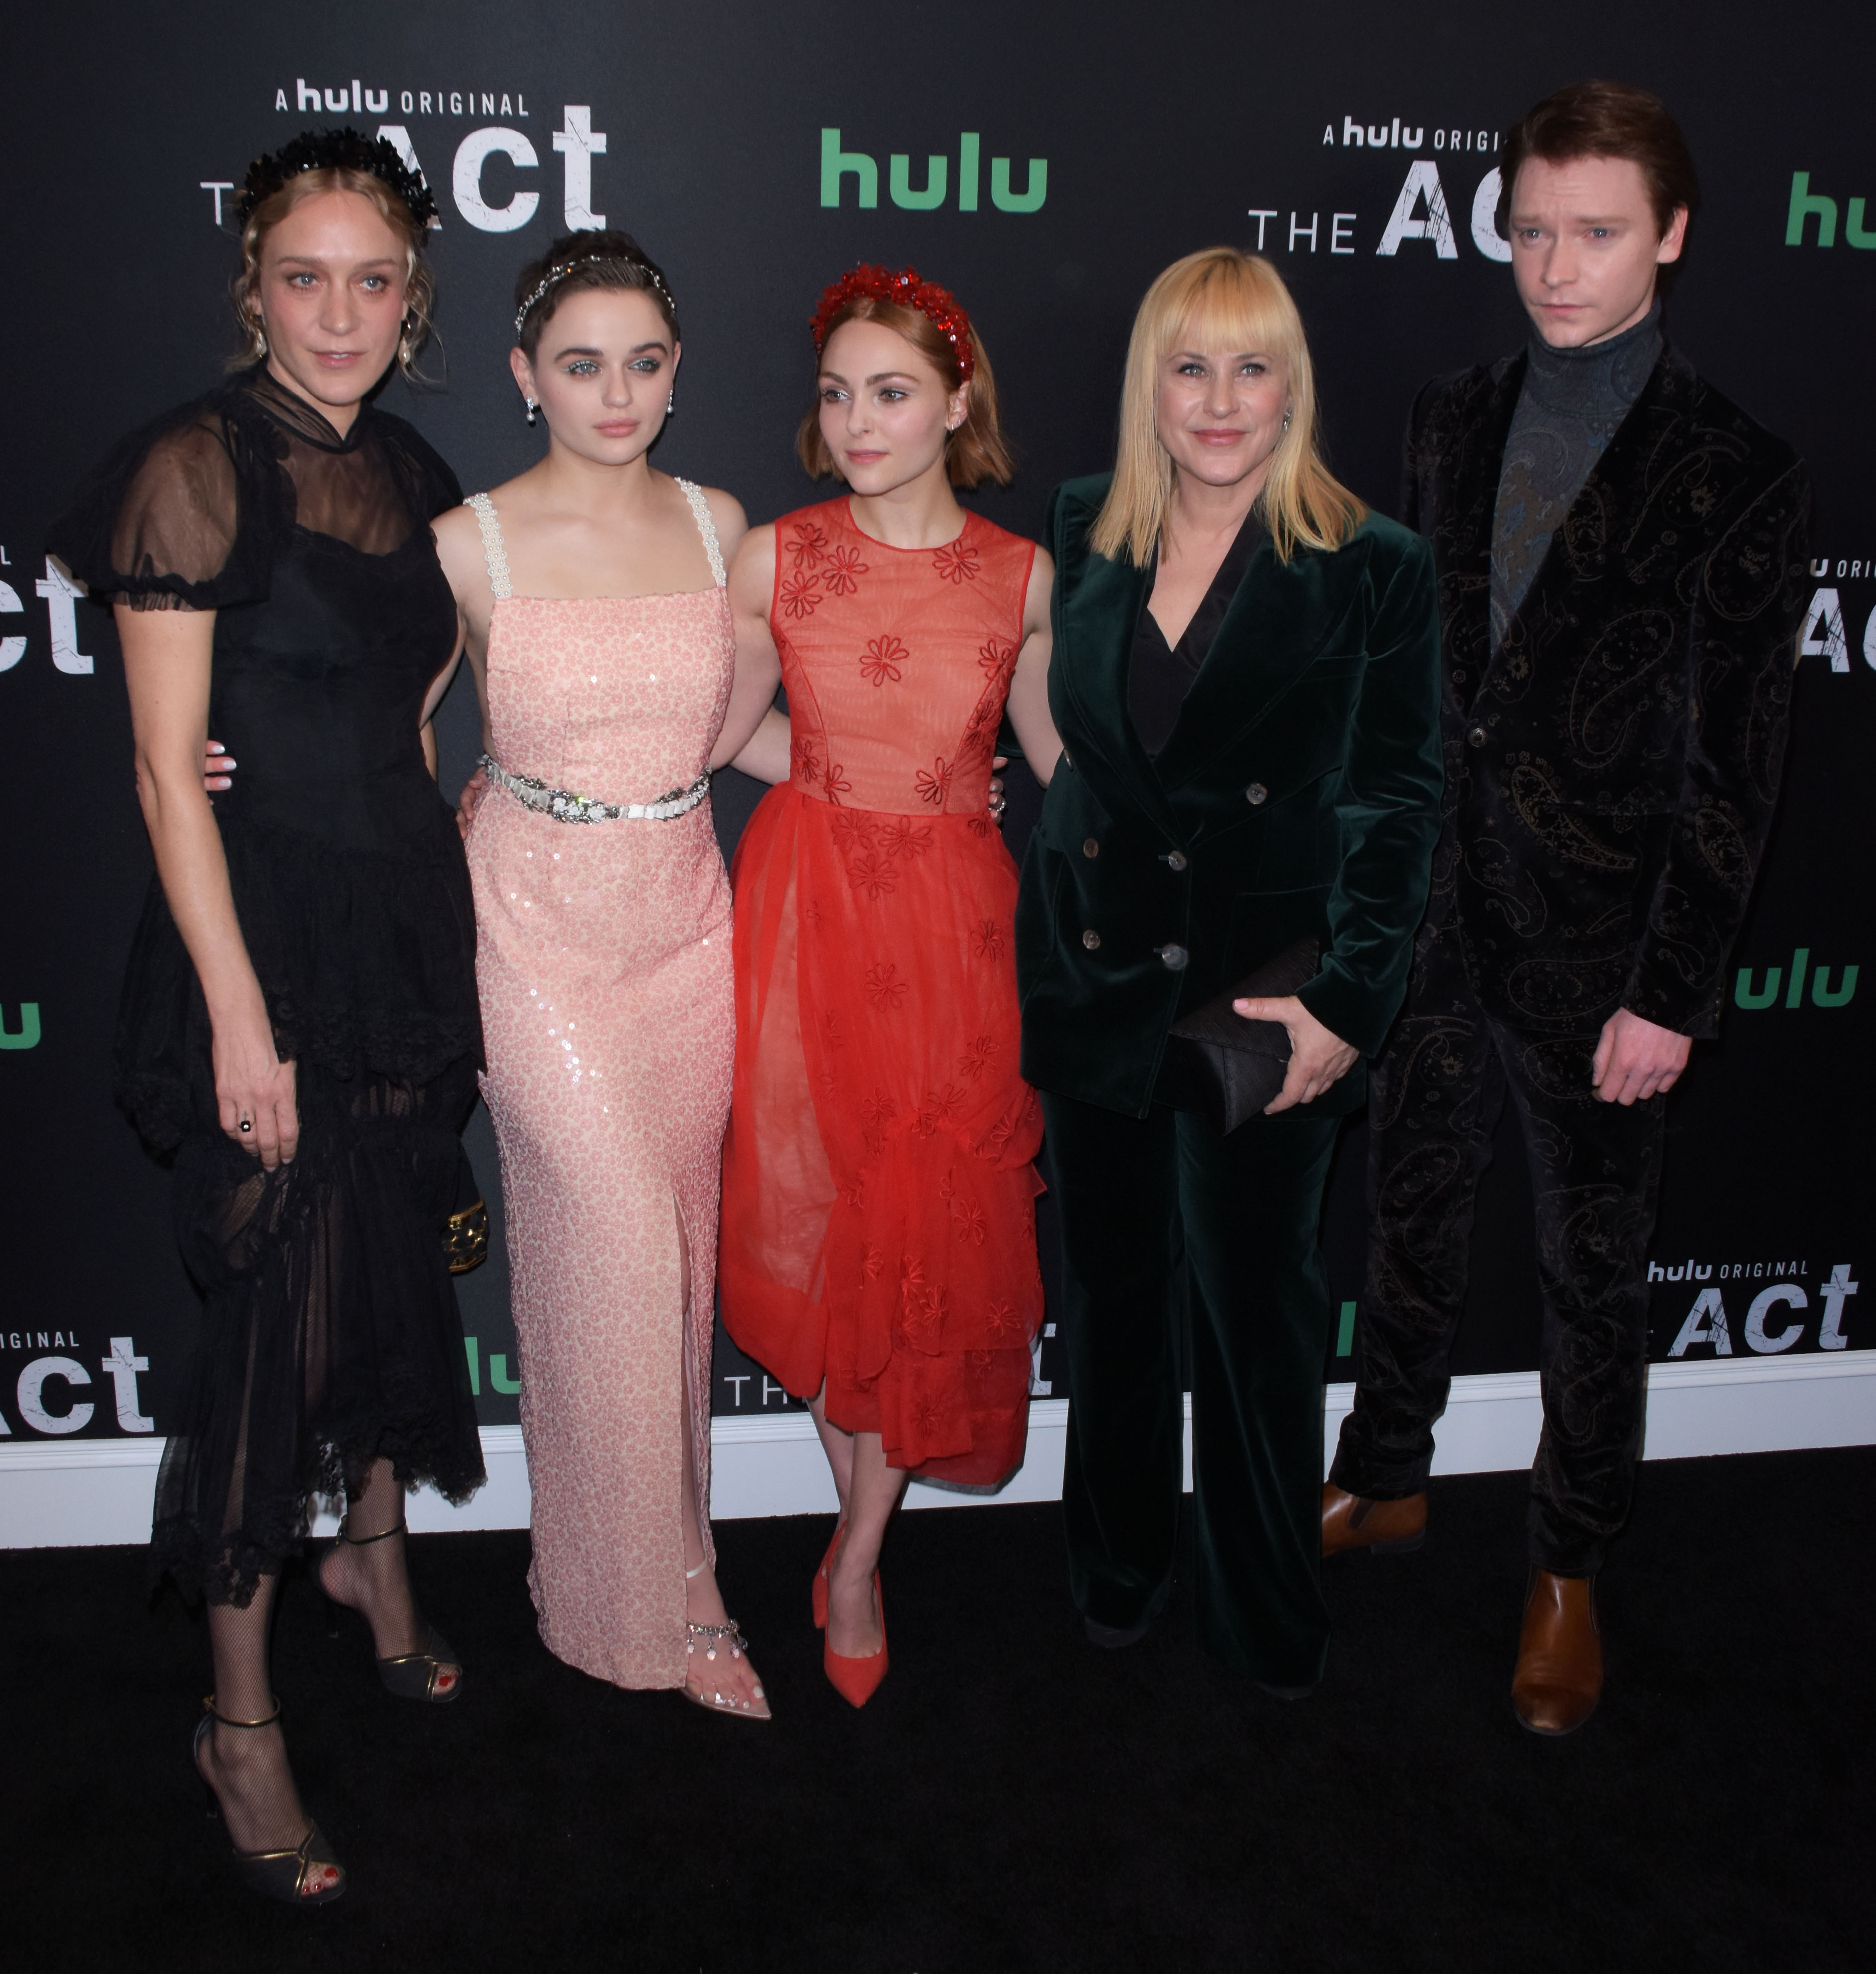 'The Act' Hulu Series NYC Premiere